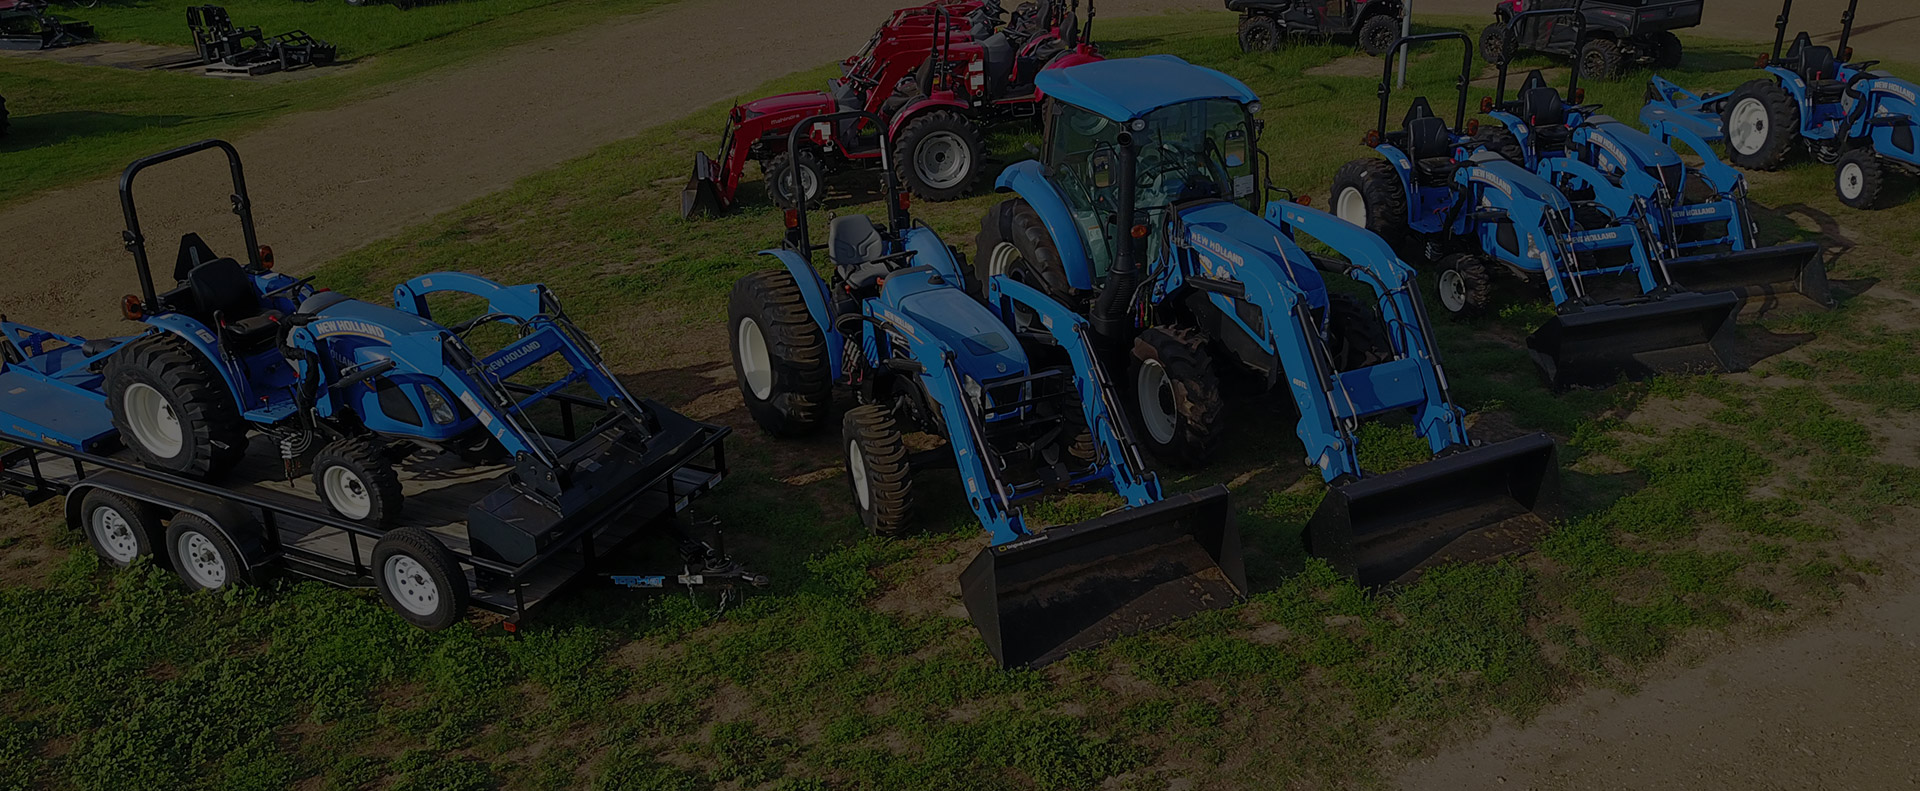 Home Collins Tractor and Equipment Crockett, TX (936) 544-3157